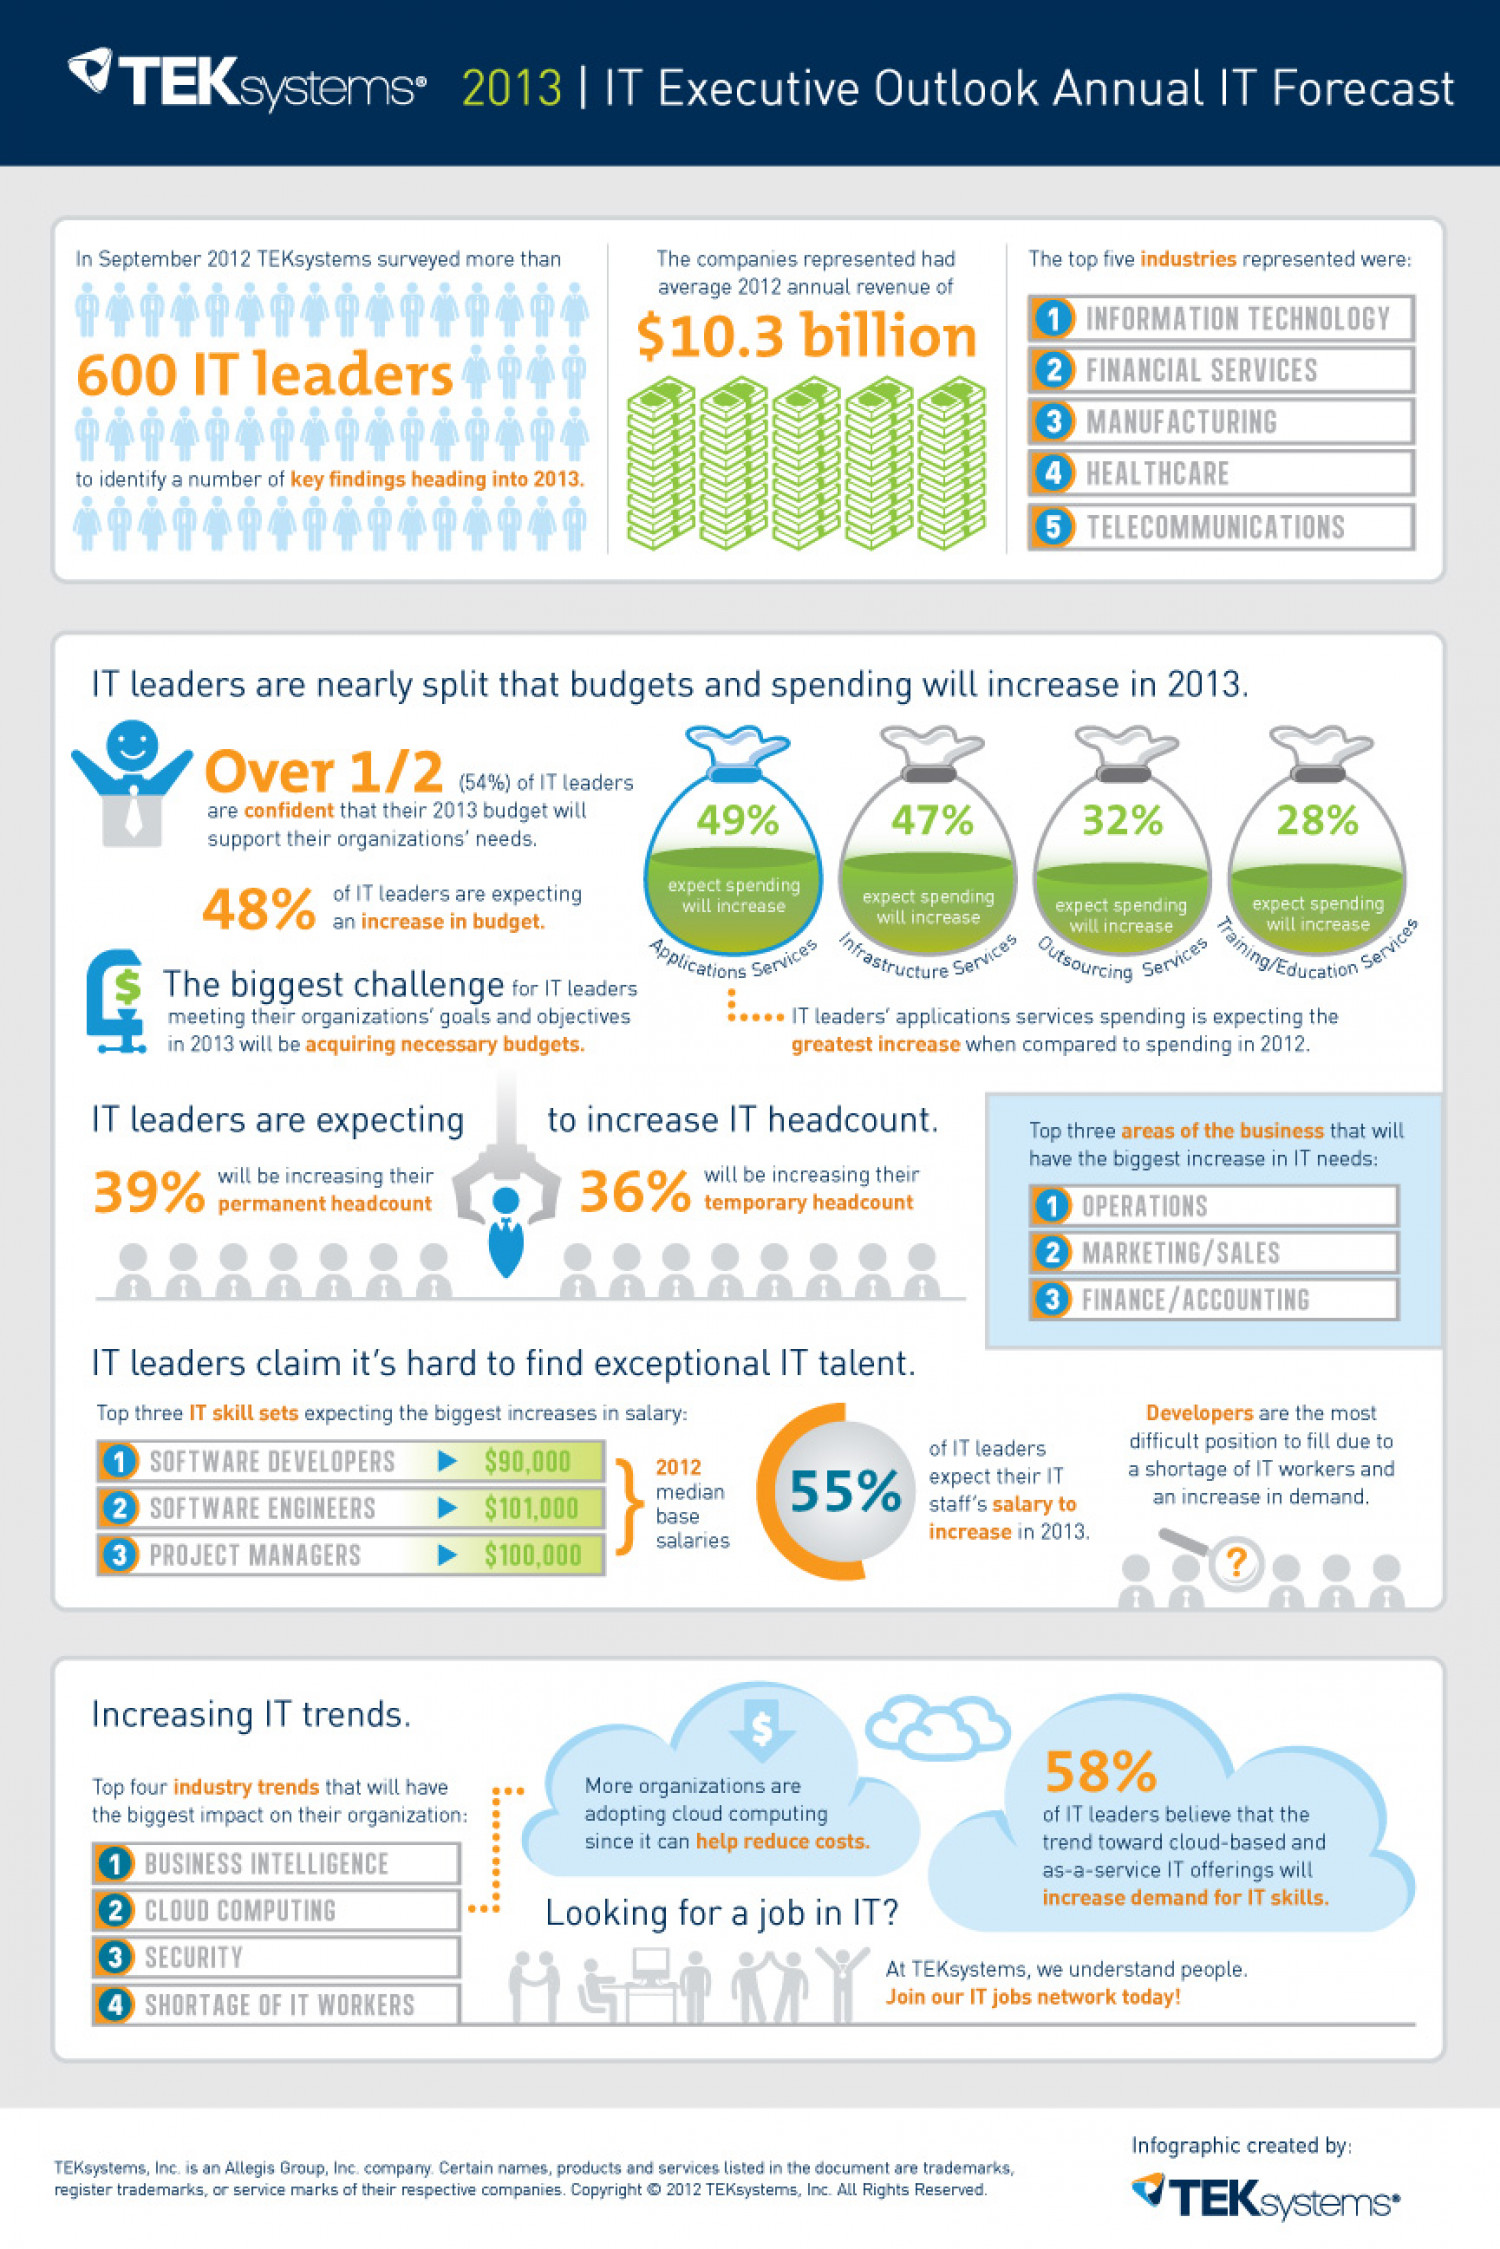 Annual IT Forecast 2013 Infographic